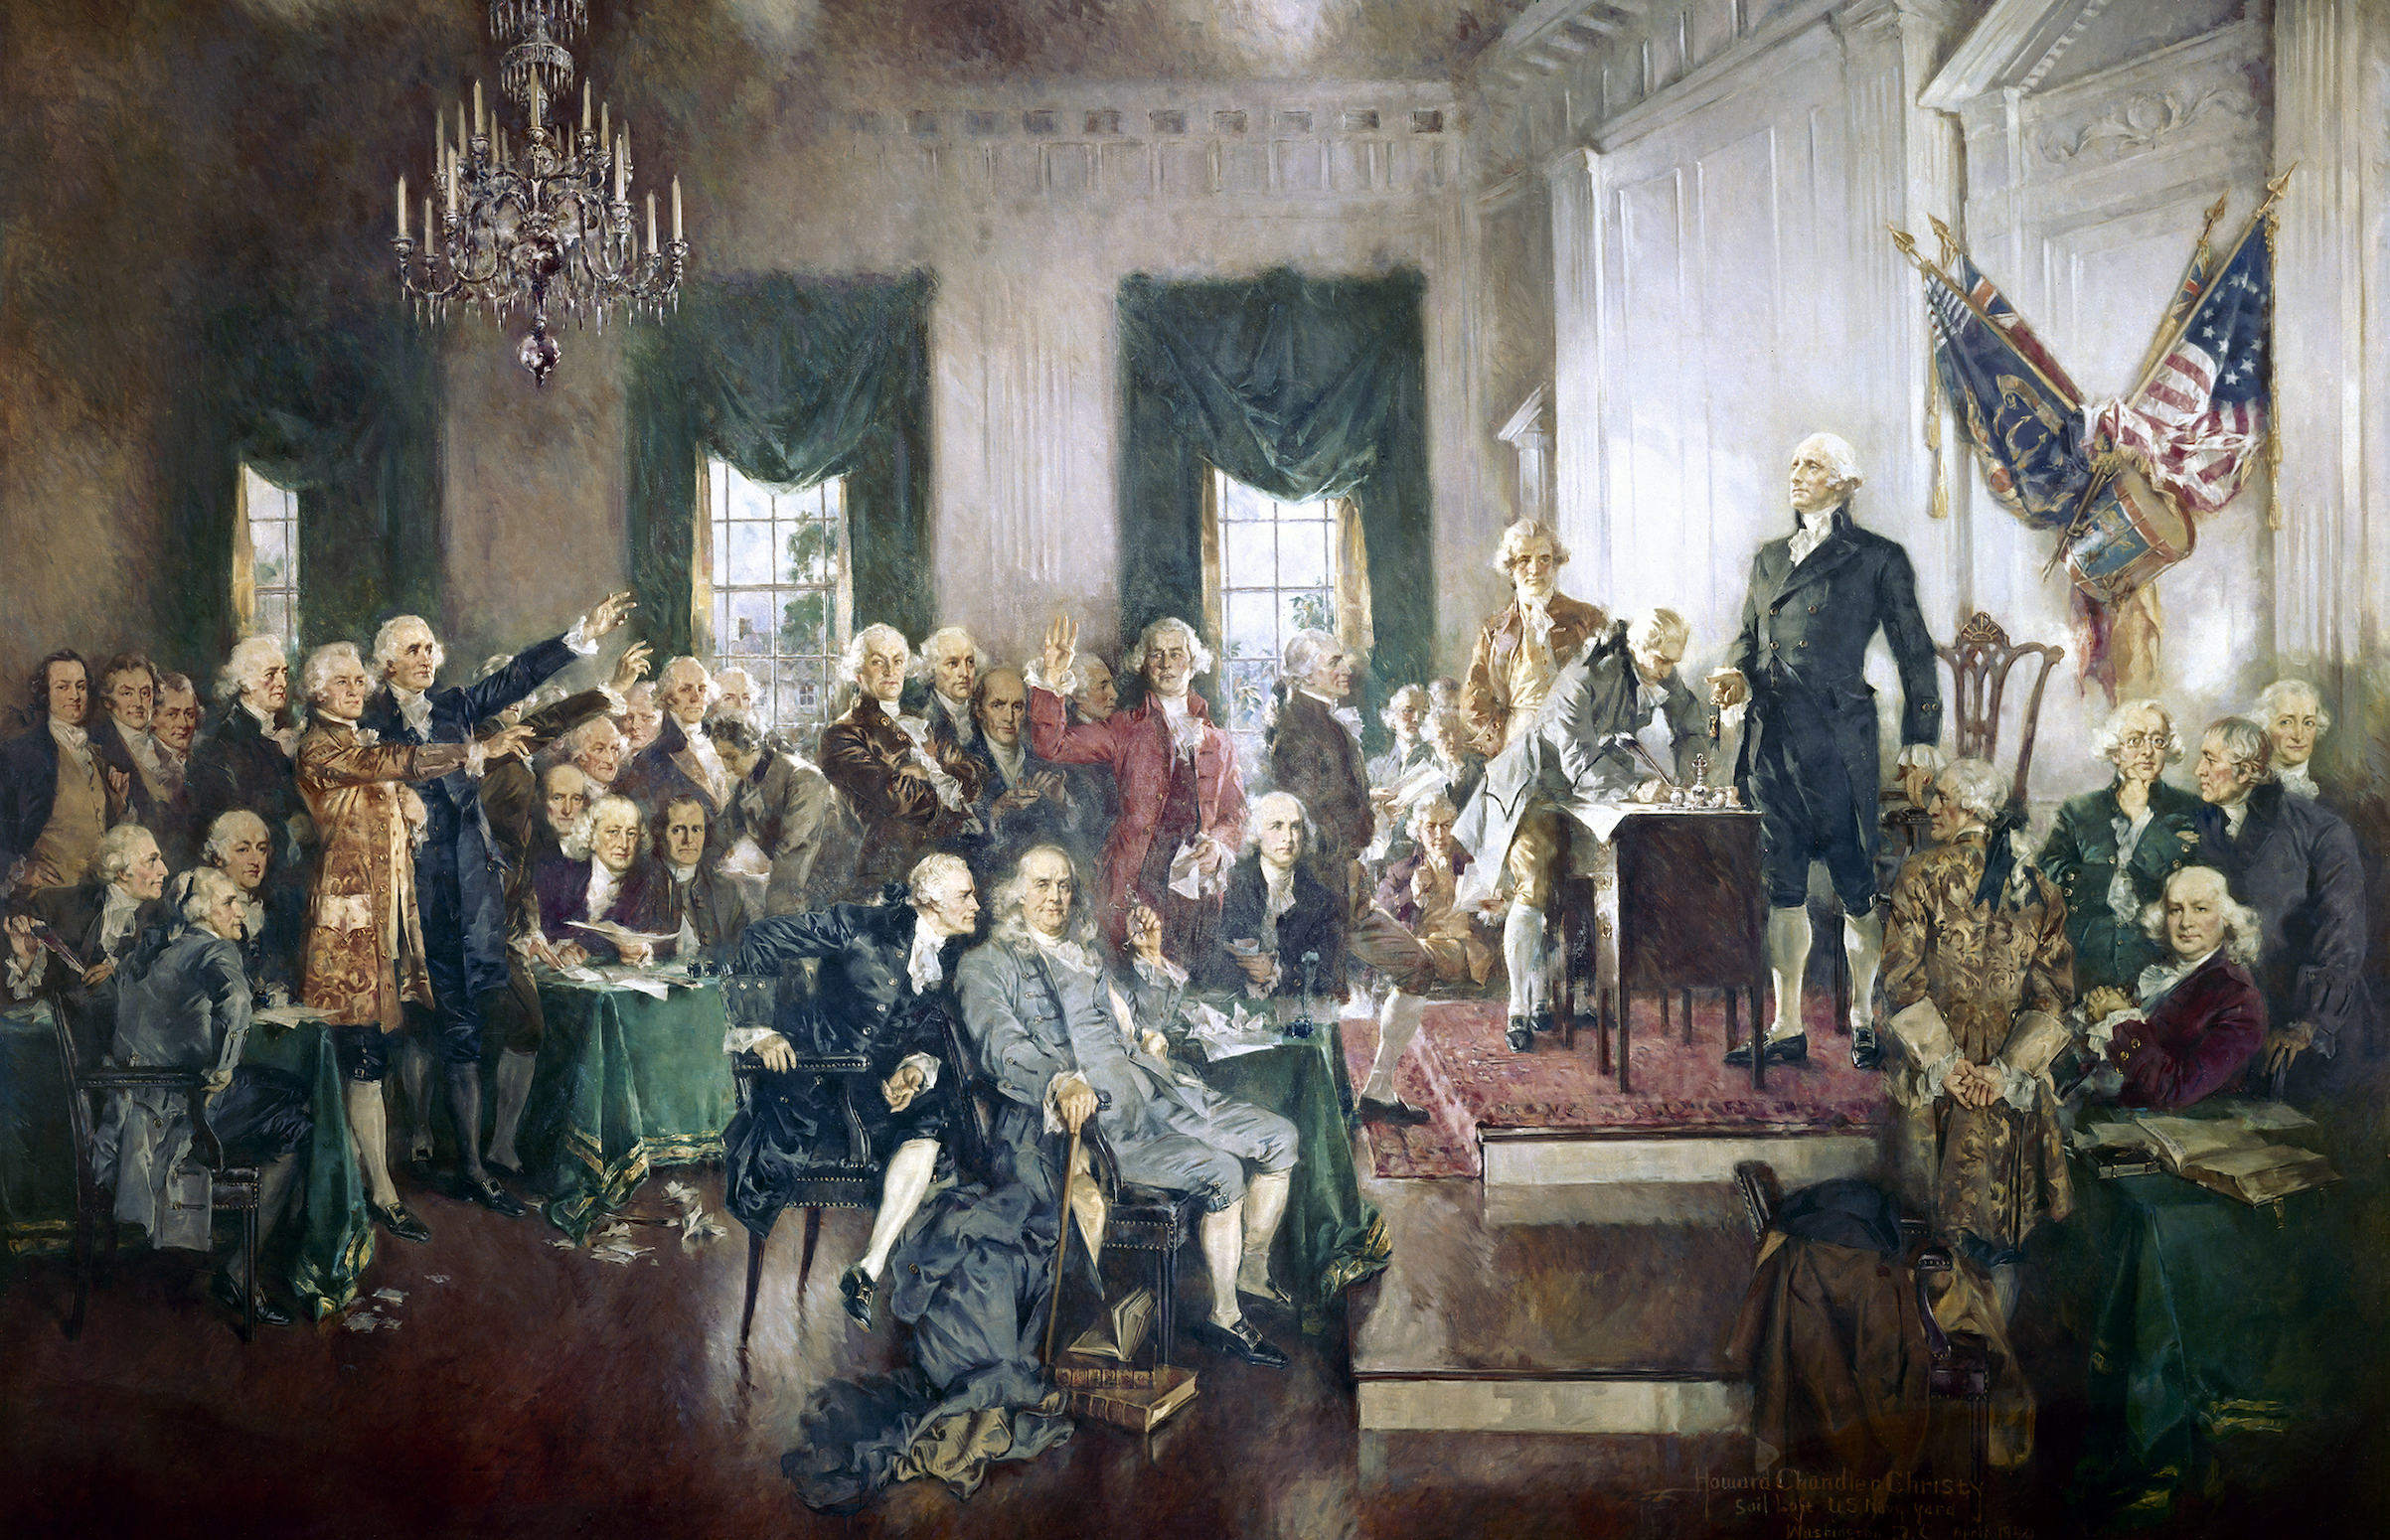 The Signing of the Constitution of the United States at the Constitutional Convention of 1787; oil painting on canvas by Howard Chandler Christy, 1940.